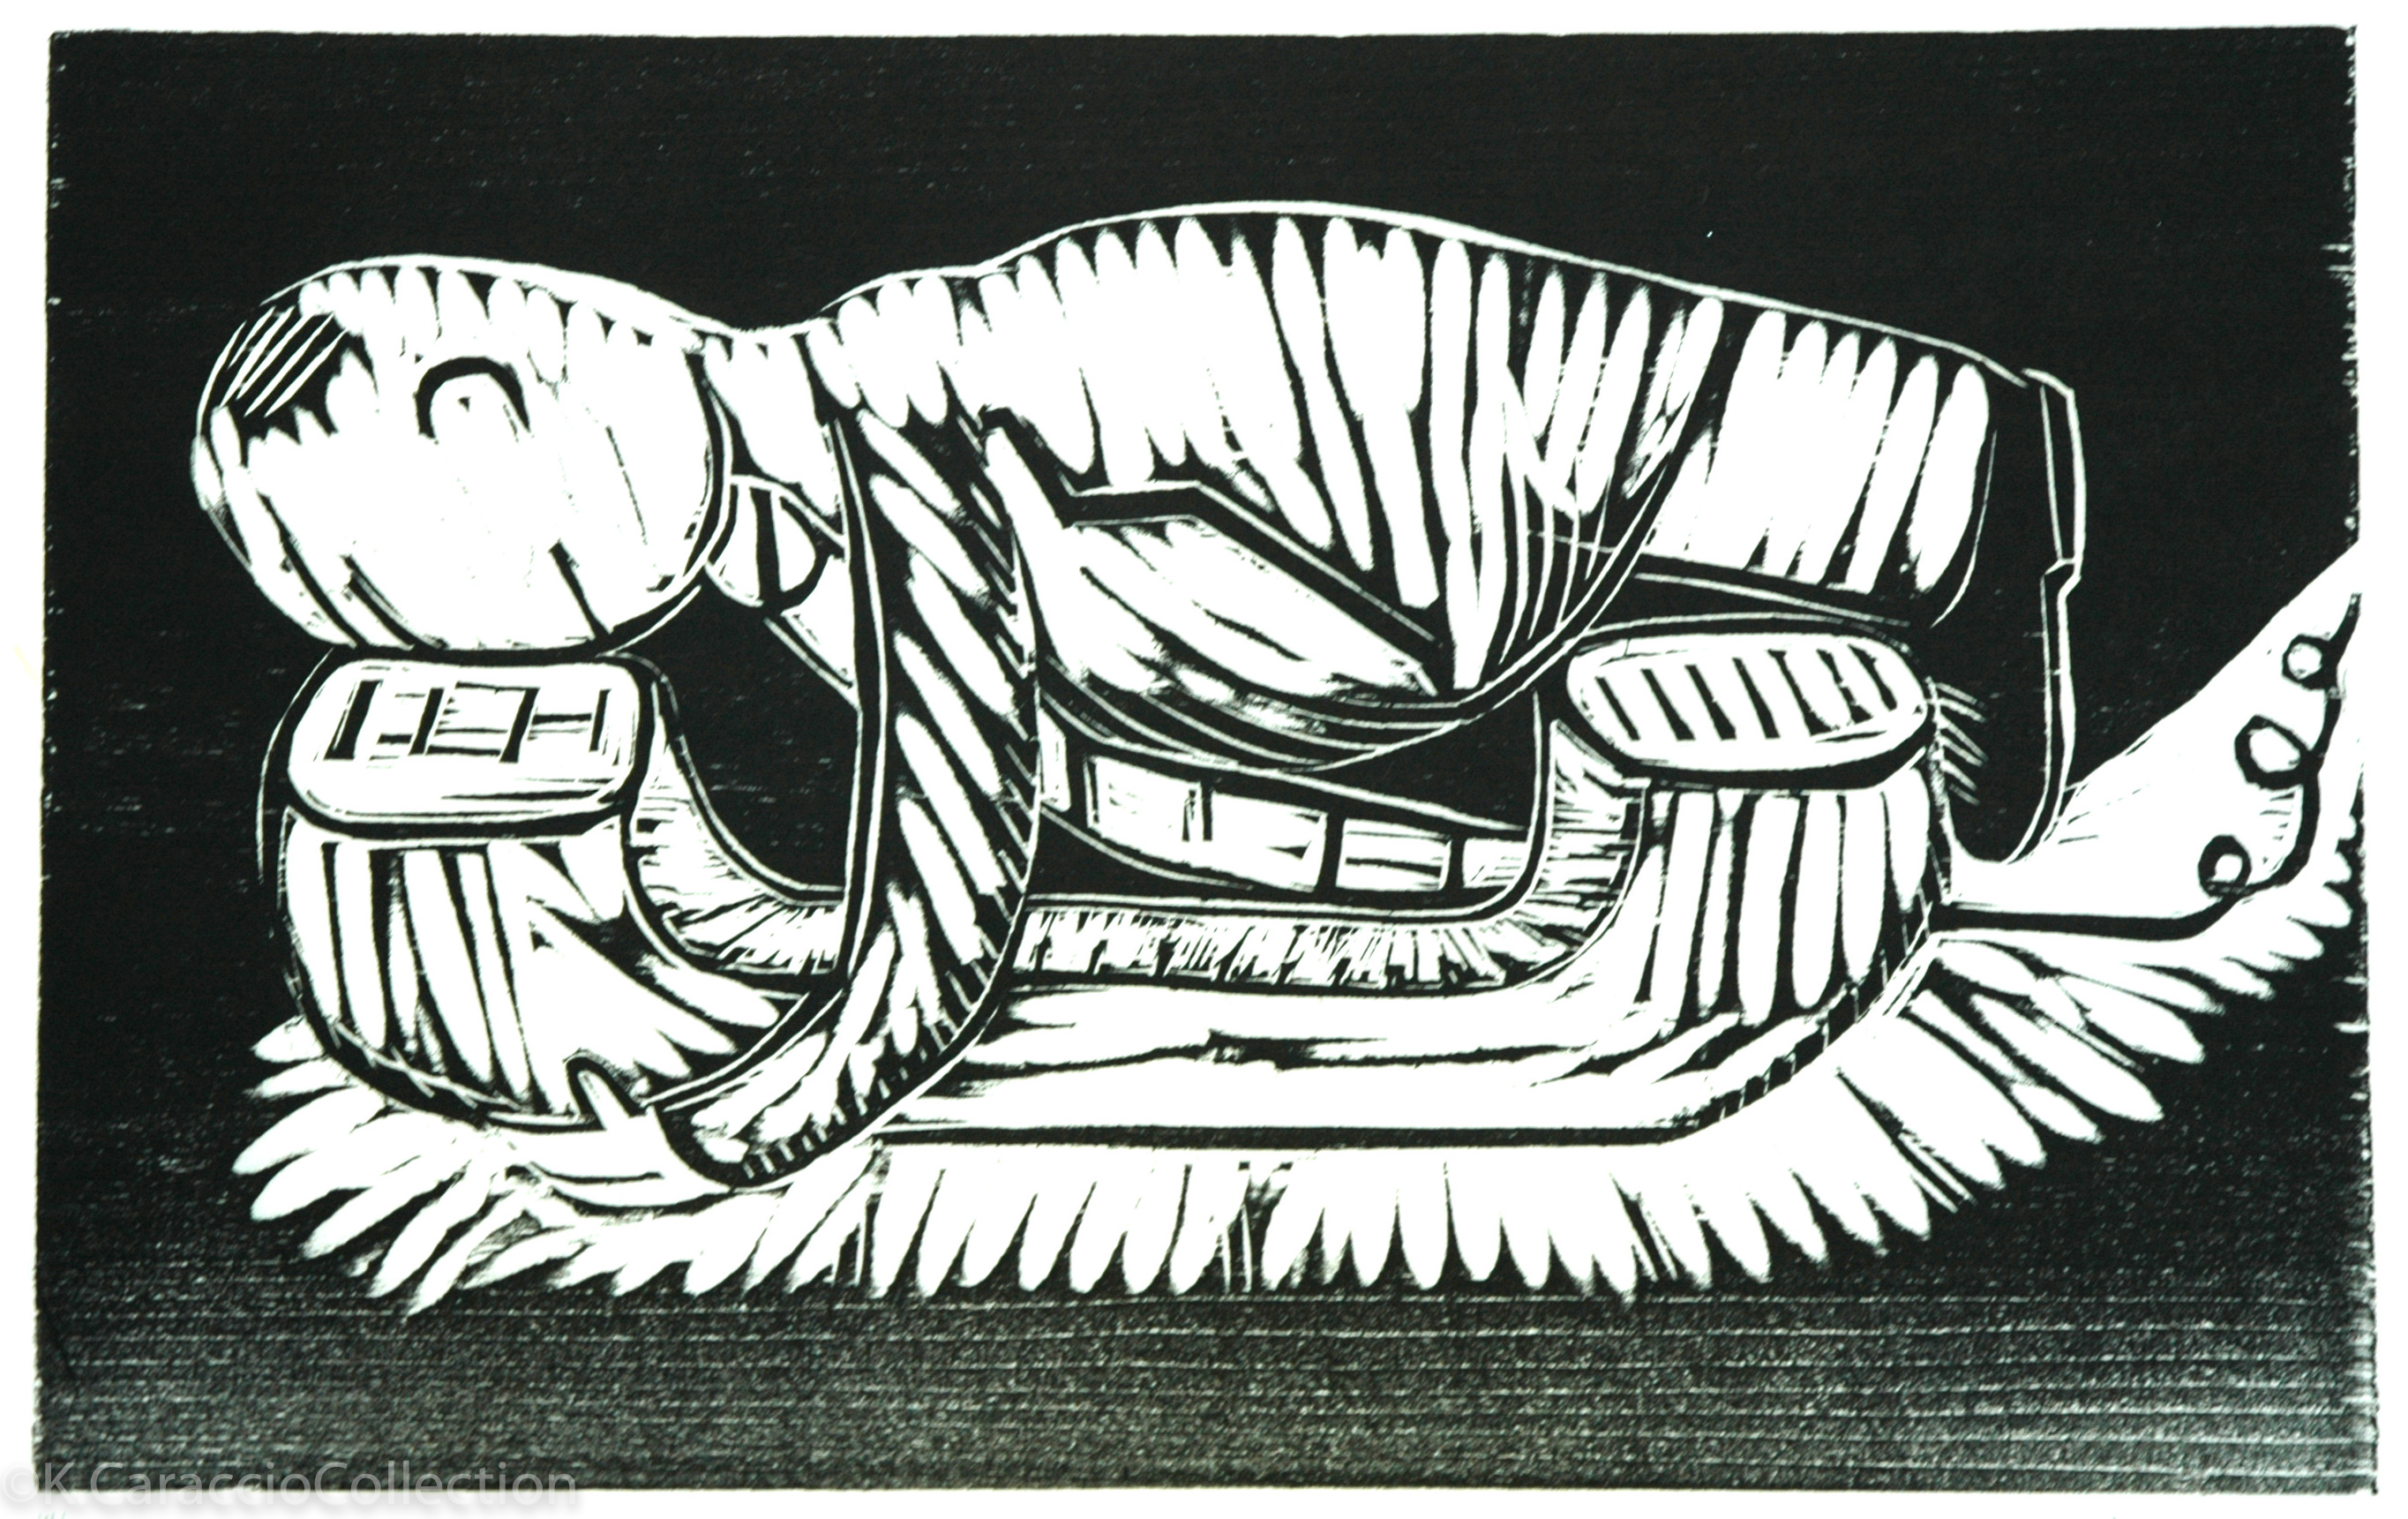 On the Phone, 1996